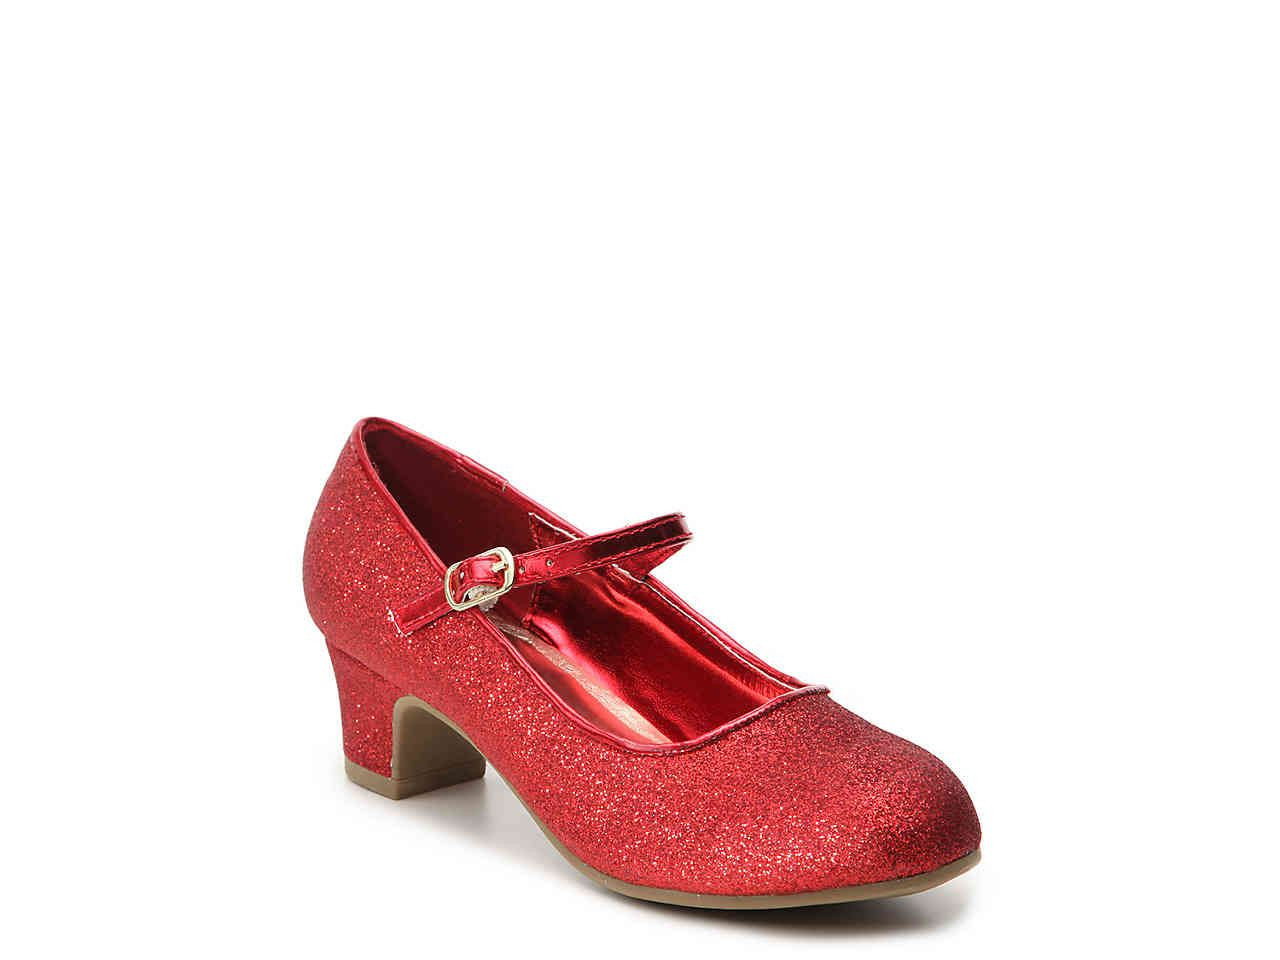 5c69e590de Lucina Toddler   Youth Mary Jane Pump Mary Jane Pumps